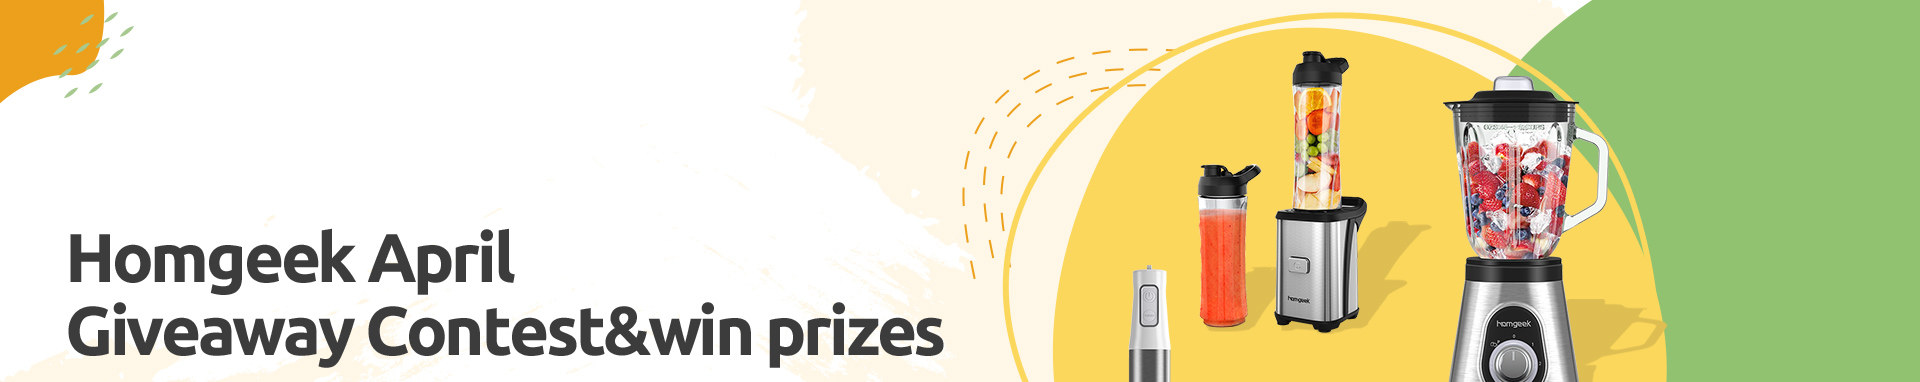 Join homgeek's Giveaway Competition & Win Prizes